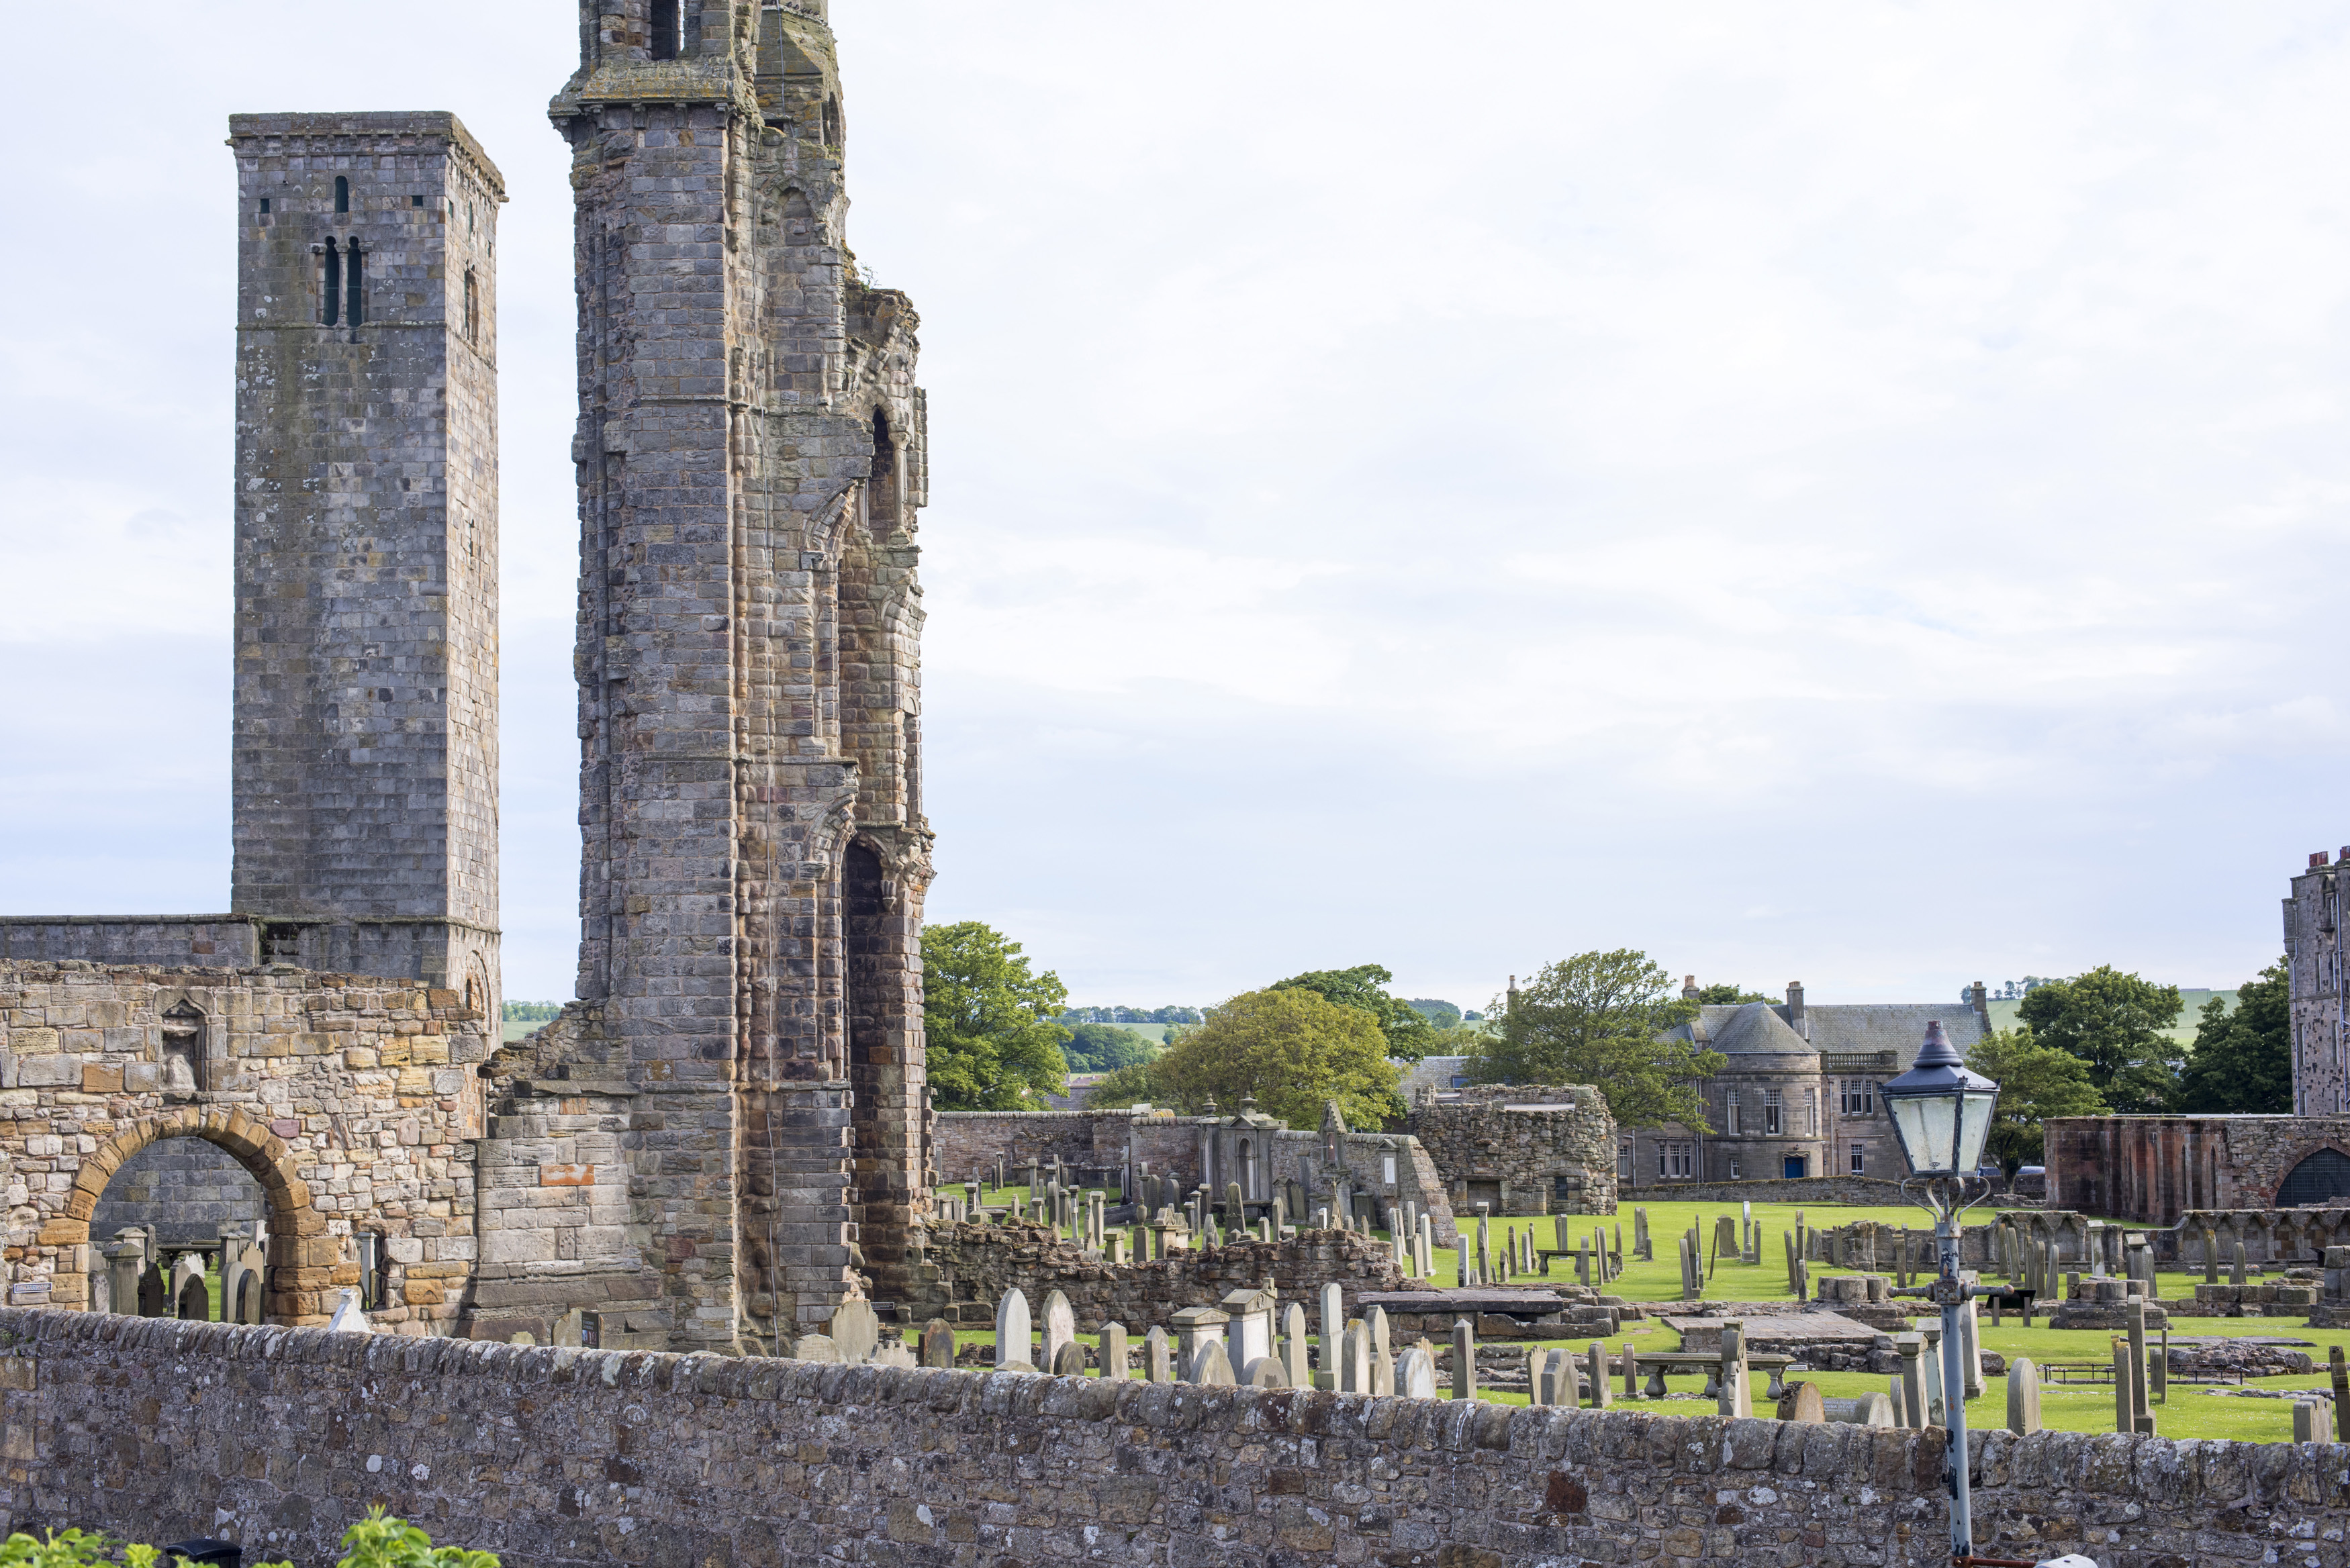 Stone barrier in front of old graveyard and towers of Saint Andrews Cathedral in Scotland with copy space in sky